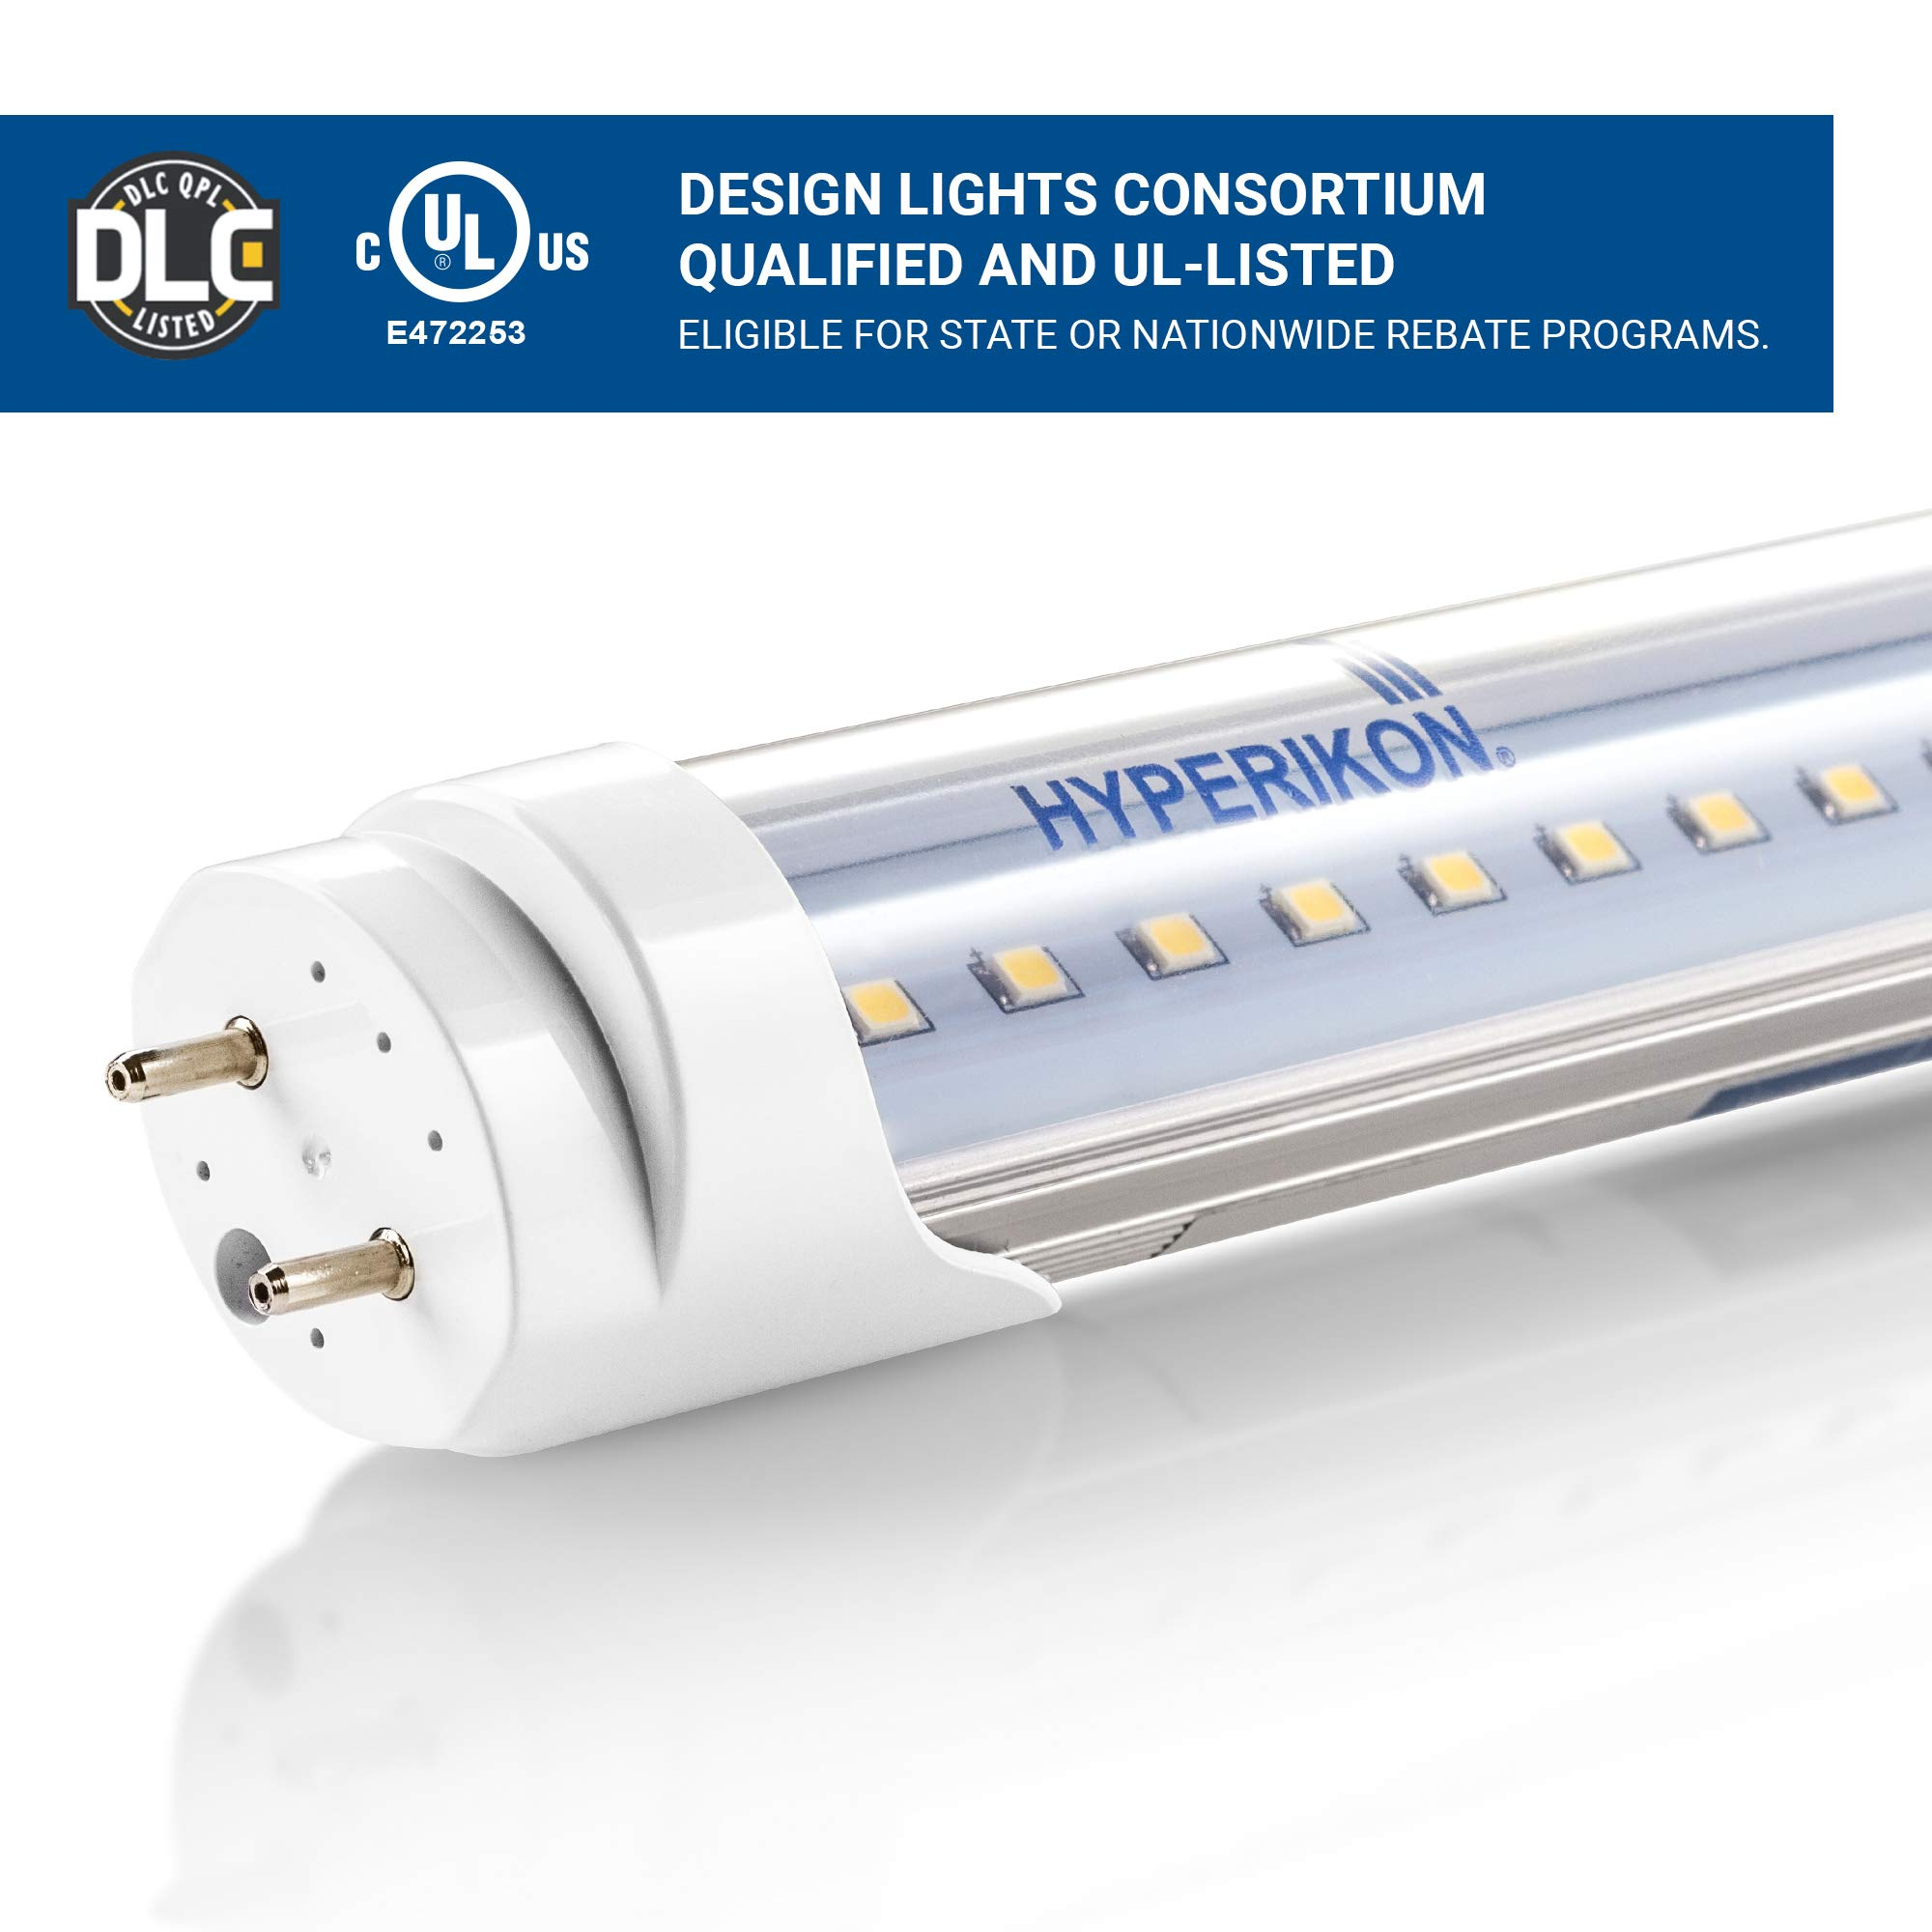 Hyperikon T8 T10 T12 LED Light Tube, 4FT, Dual-End Powered, Easy Ballast Removal Installation, 18W (48W Equivalent), 2340 Lumens, 6000K (Super Bright White), Clear Cover, DLC & UL - (4 Pack) by Hyperikon (Image #5)